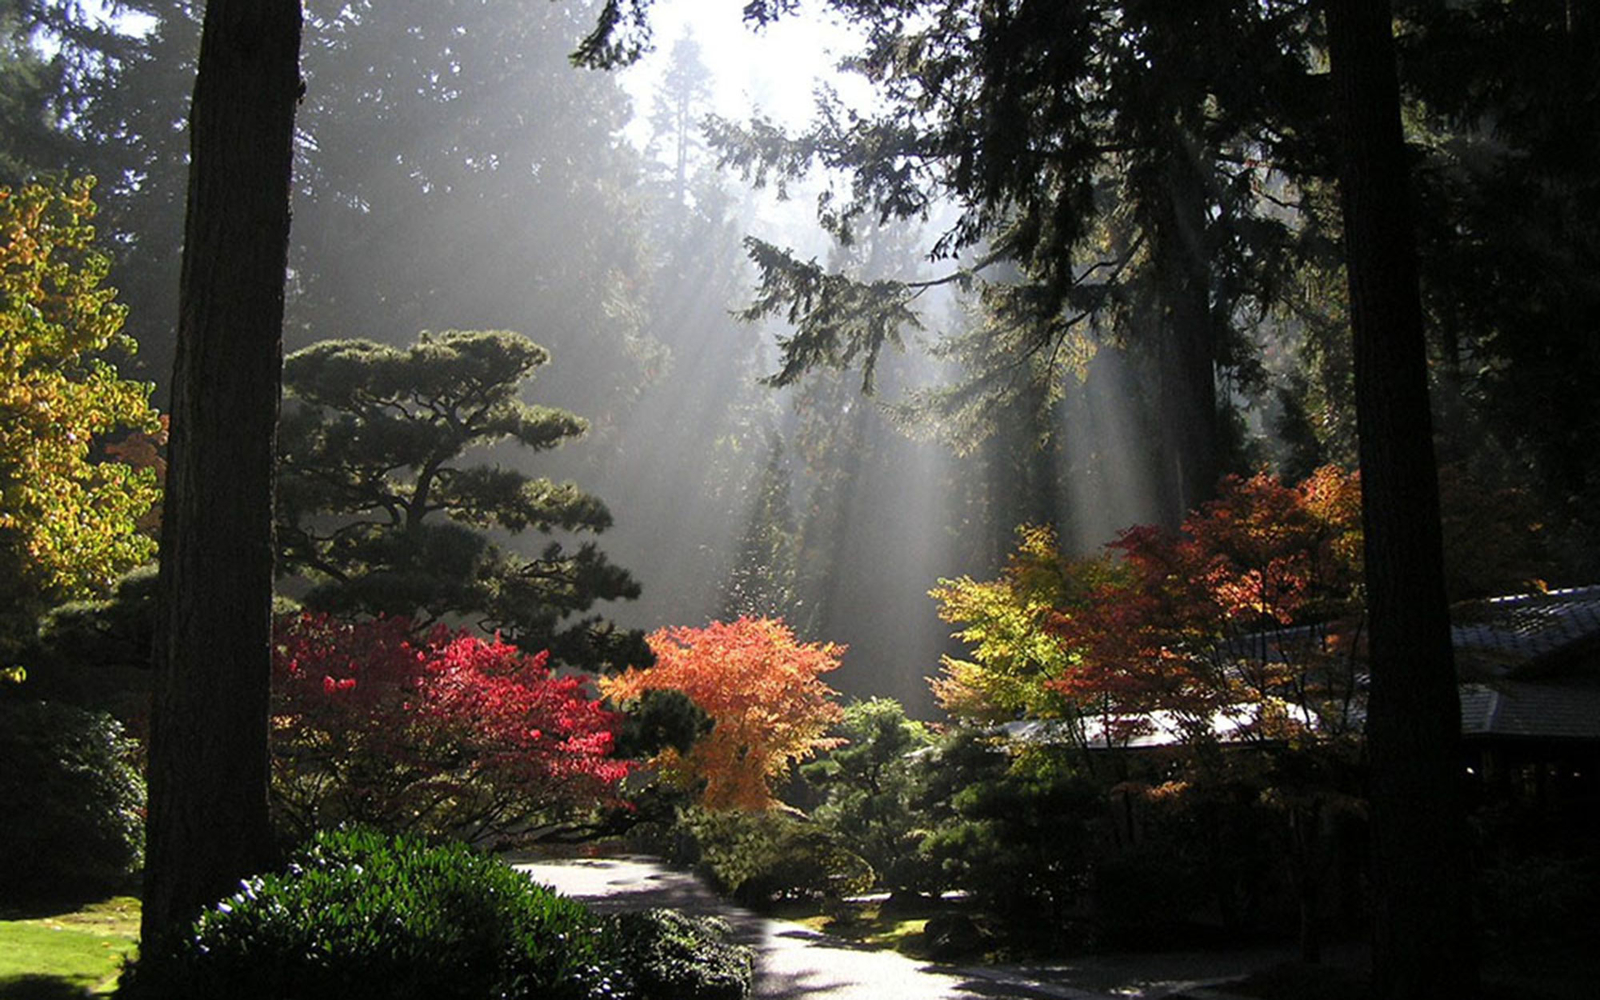 The Most Beautiful Public Gardens on the West Coast